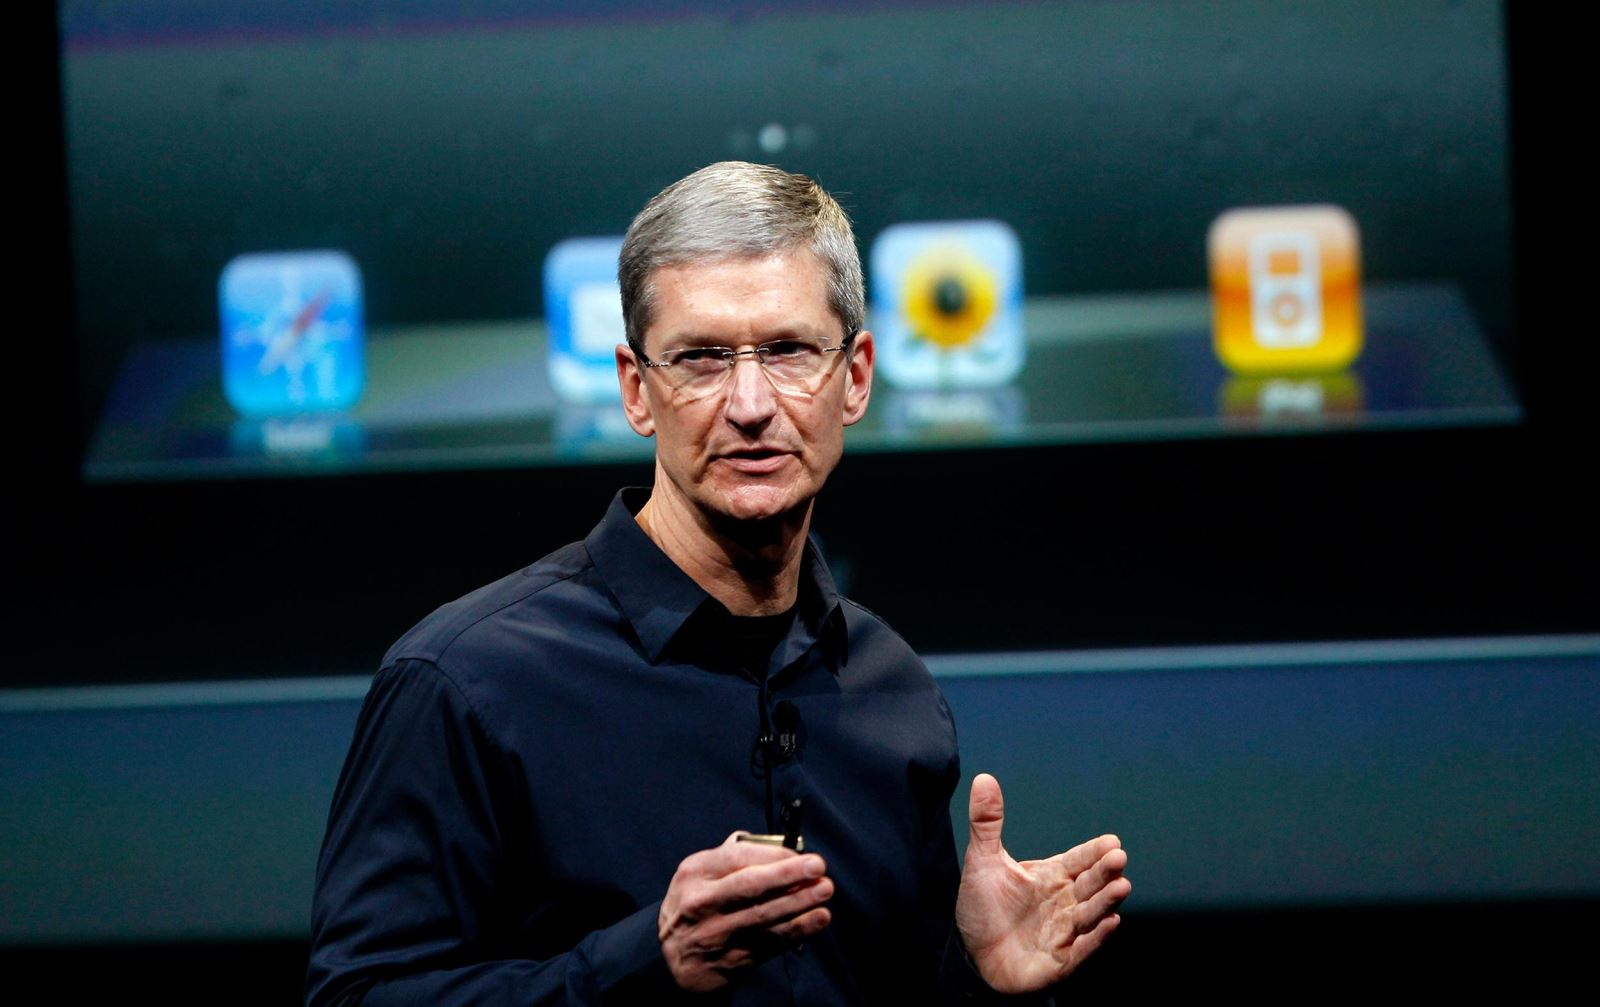 CEO Tim Cook của Apple